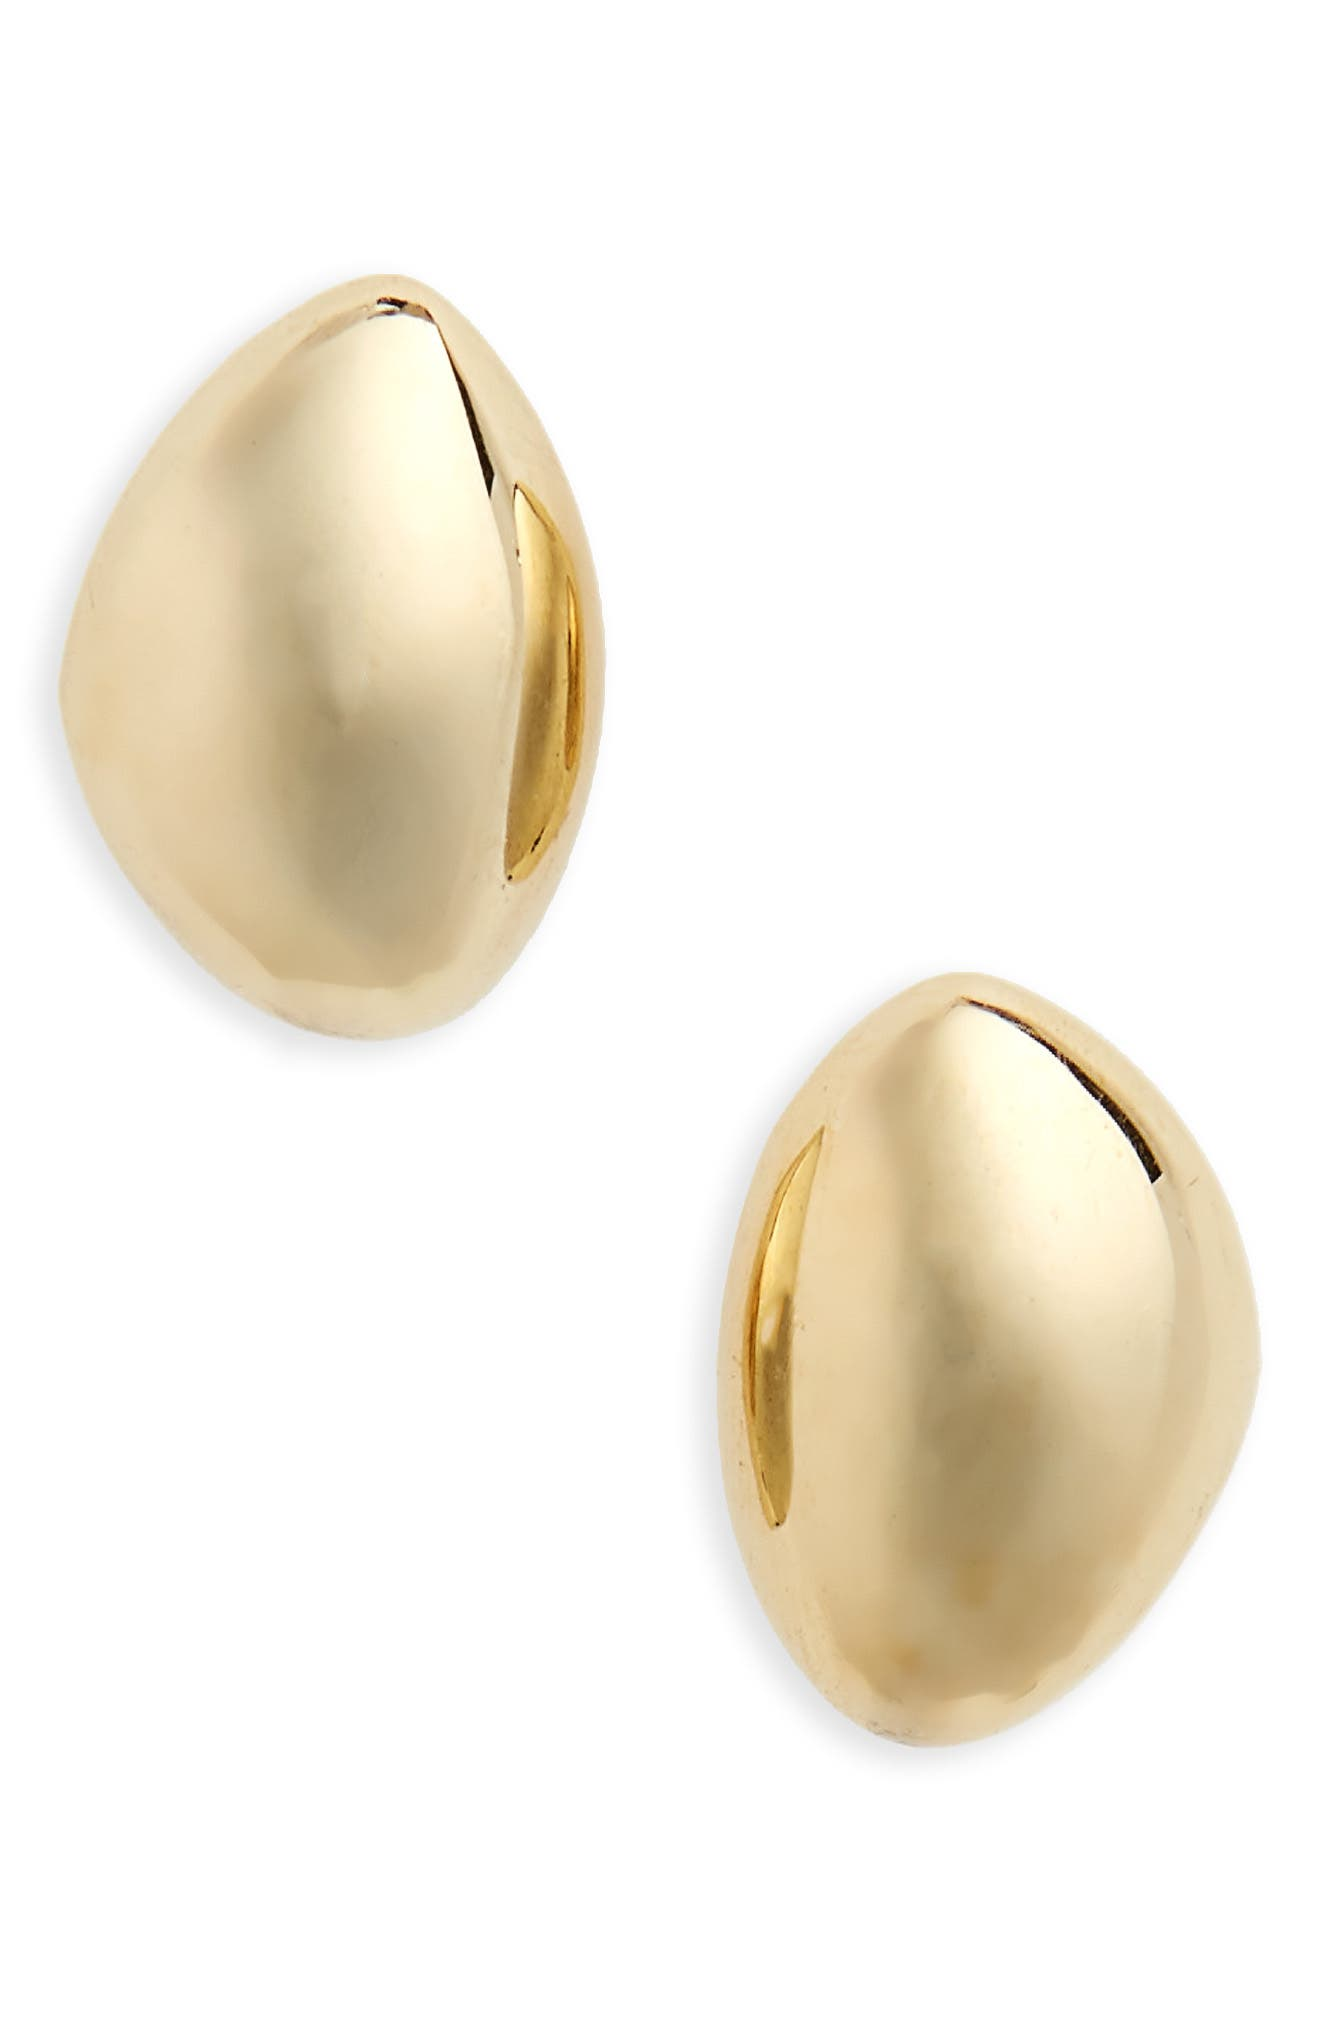 Sabi Stud Earrings,                             Main thumbnail 1, color,                             Brass